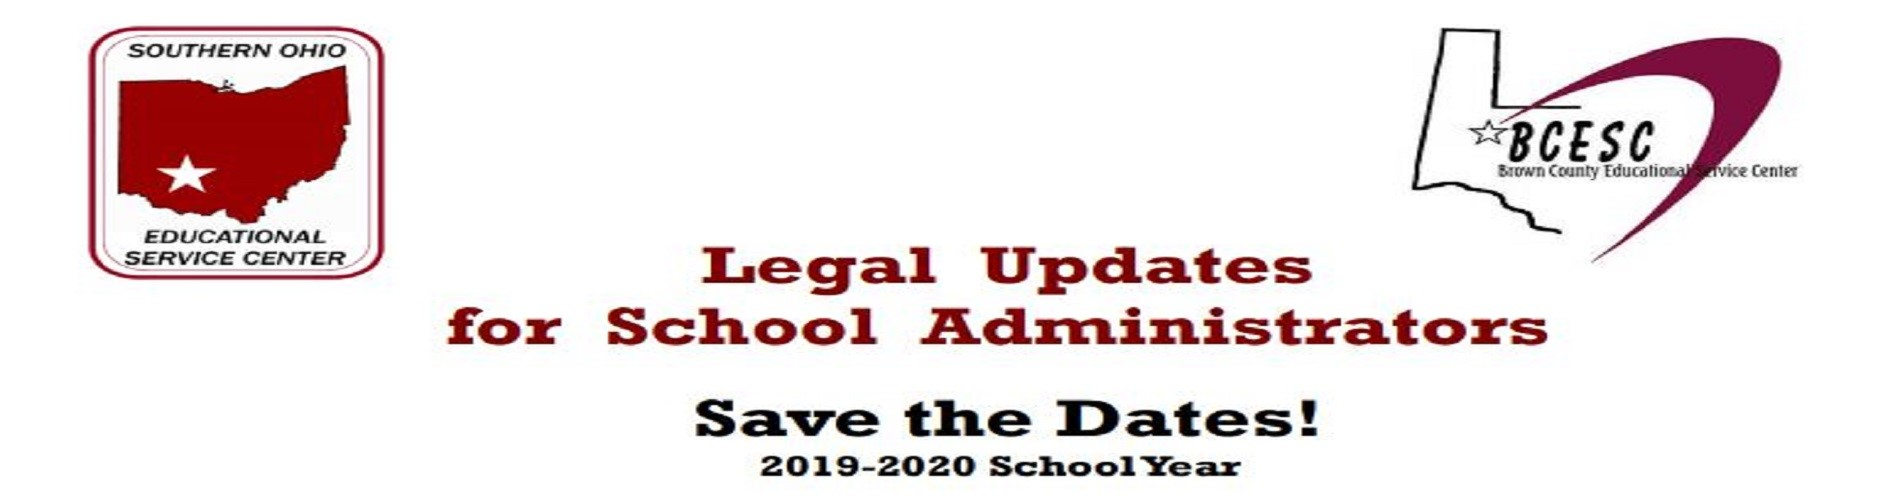 Legal Updates Save the Dates Flyer